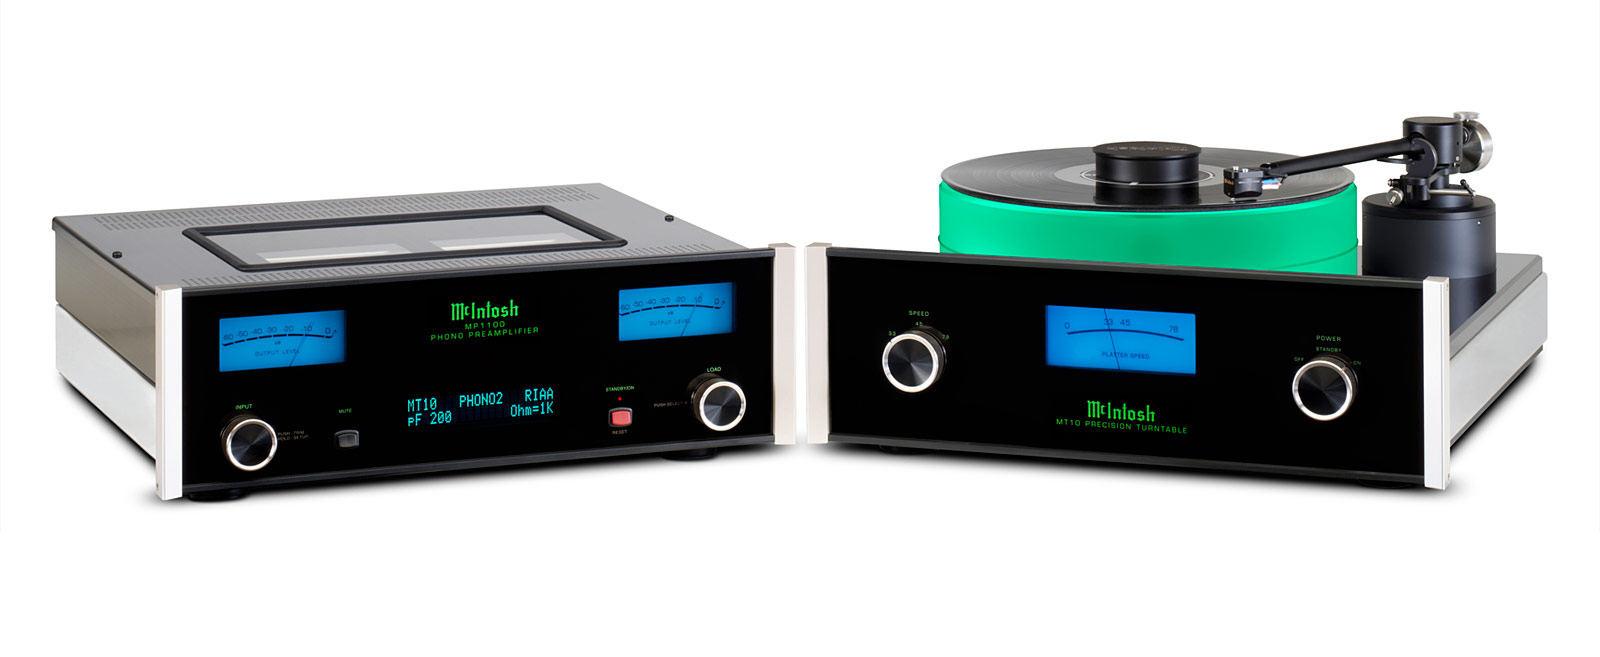 McIntosh-MP1100-MT10-Side-by-Side